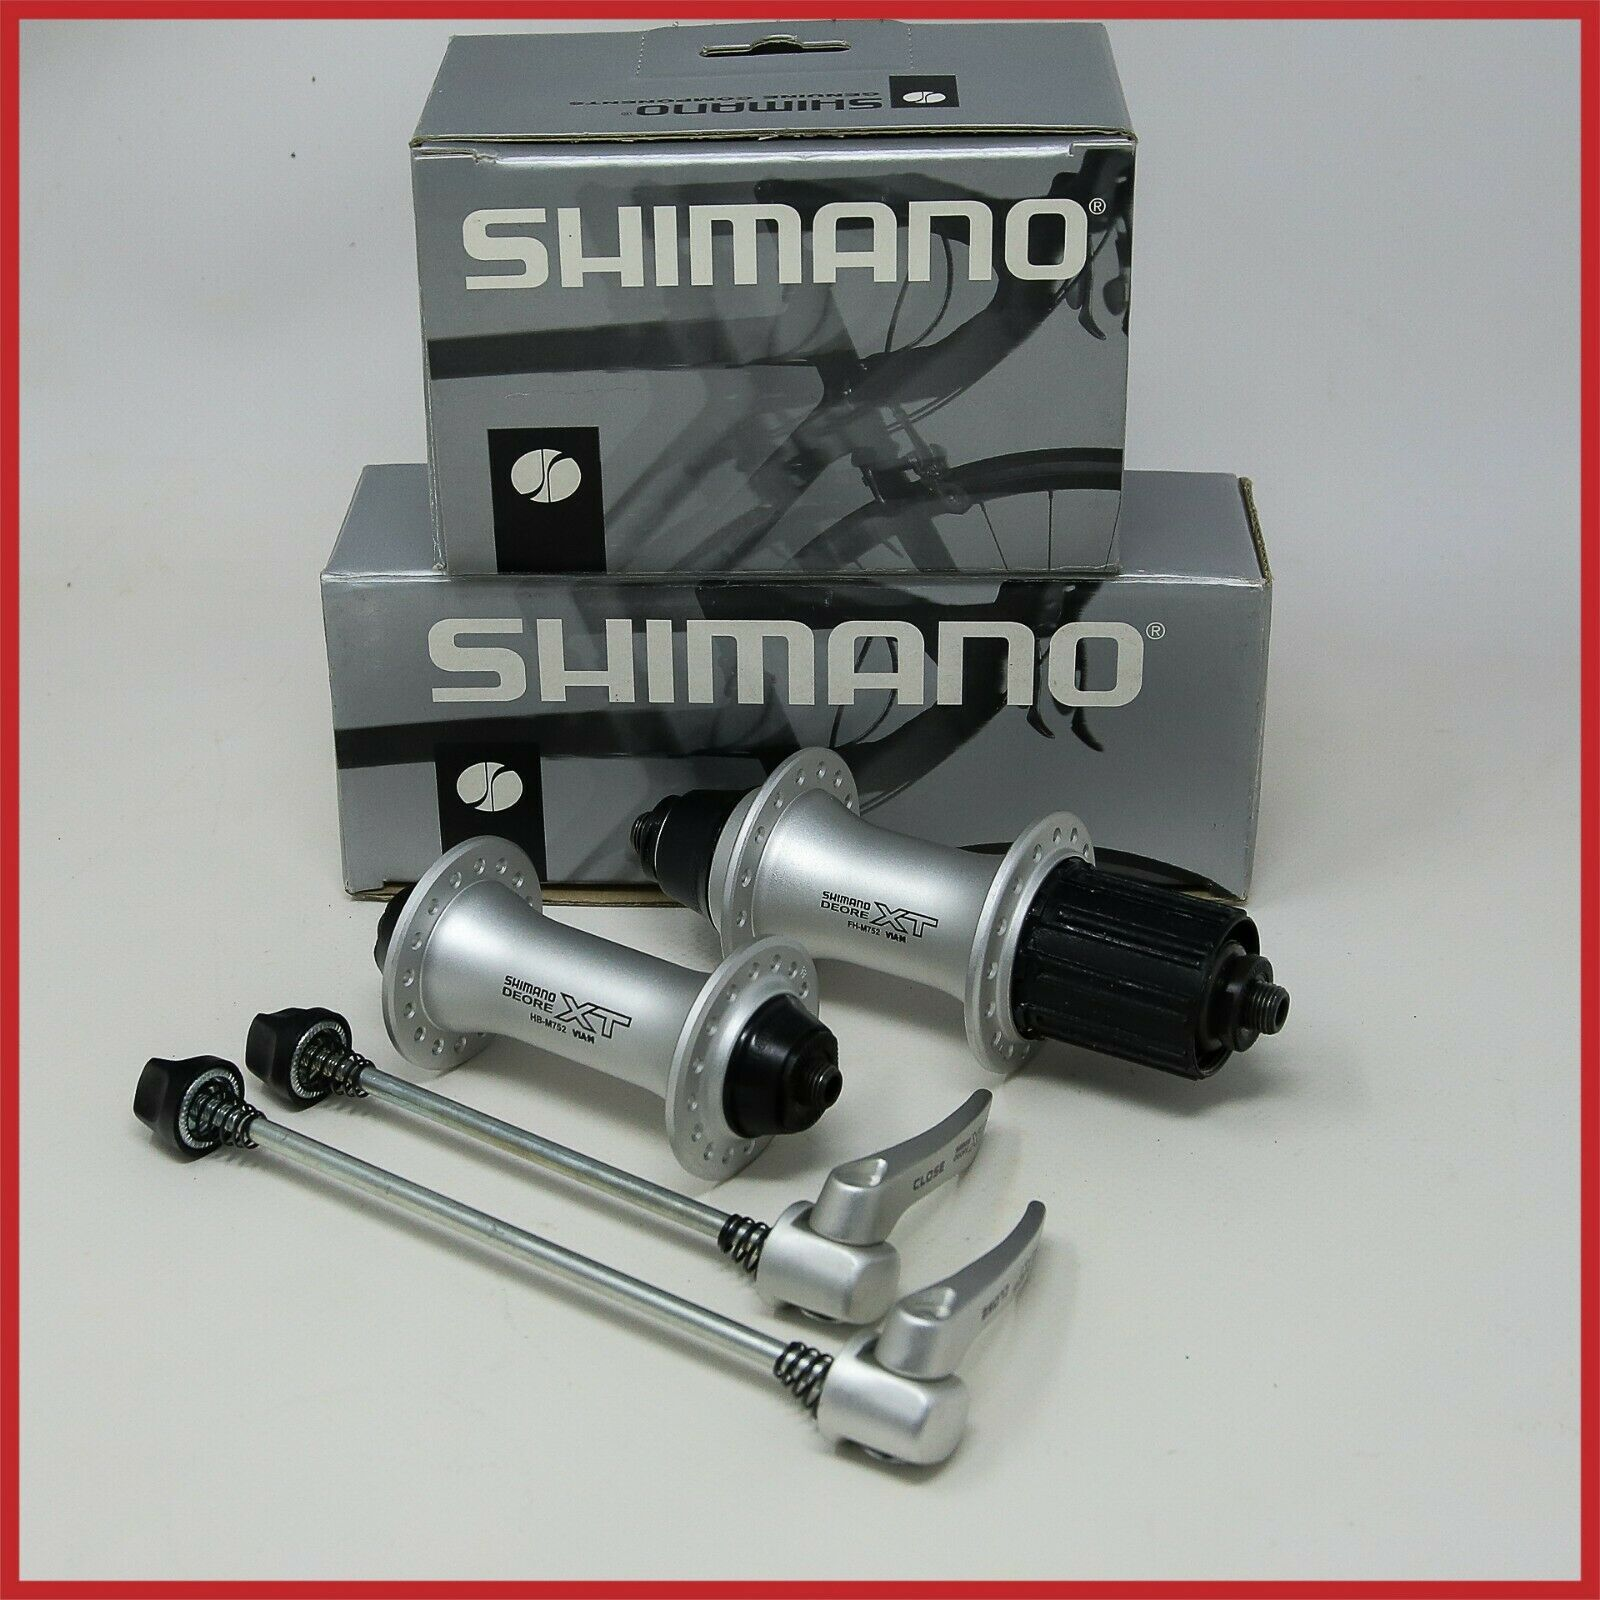 SHIMANO DEORE XT MTB HUBSET FH-M752 HB-M752 32H HOLES  9s SPEED HUBS 90s VINTAGE  promotional items